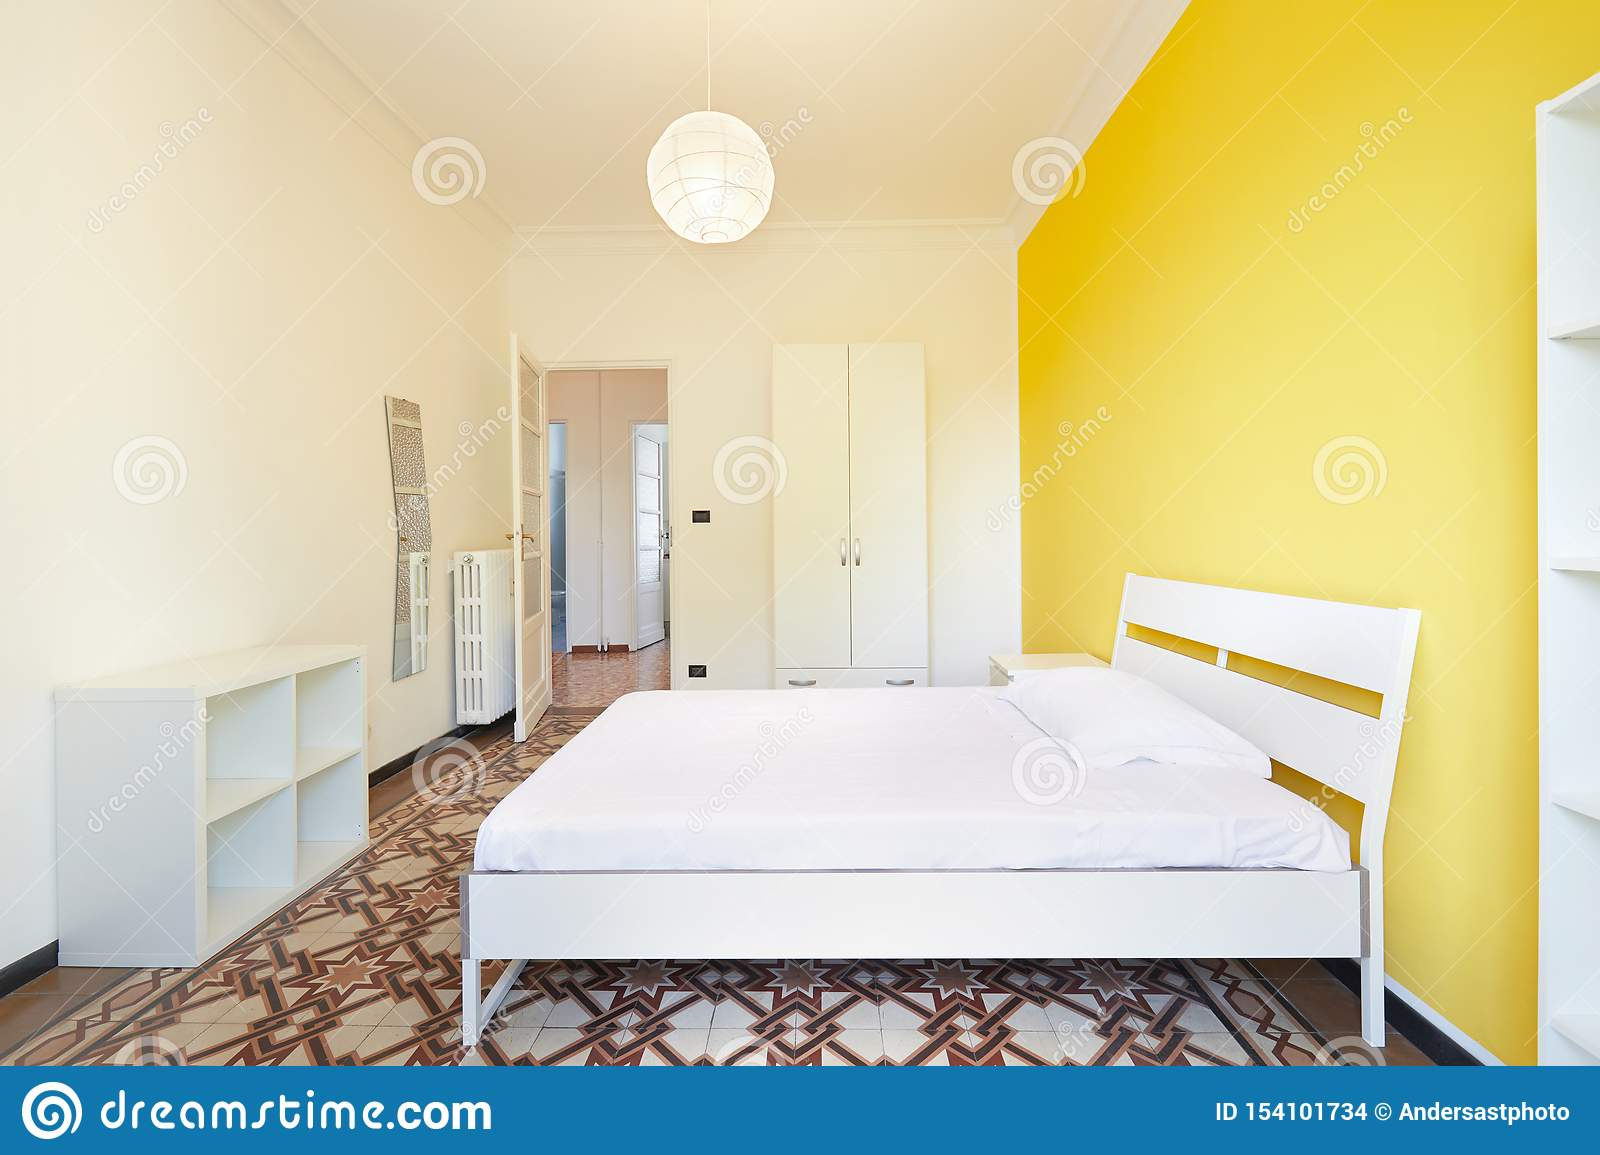 Renovated Bedroom In Apartment For Rent With White And Yellow Walls Stock Photo Image Of Door Floor 154101734